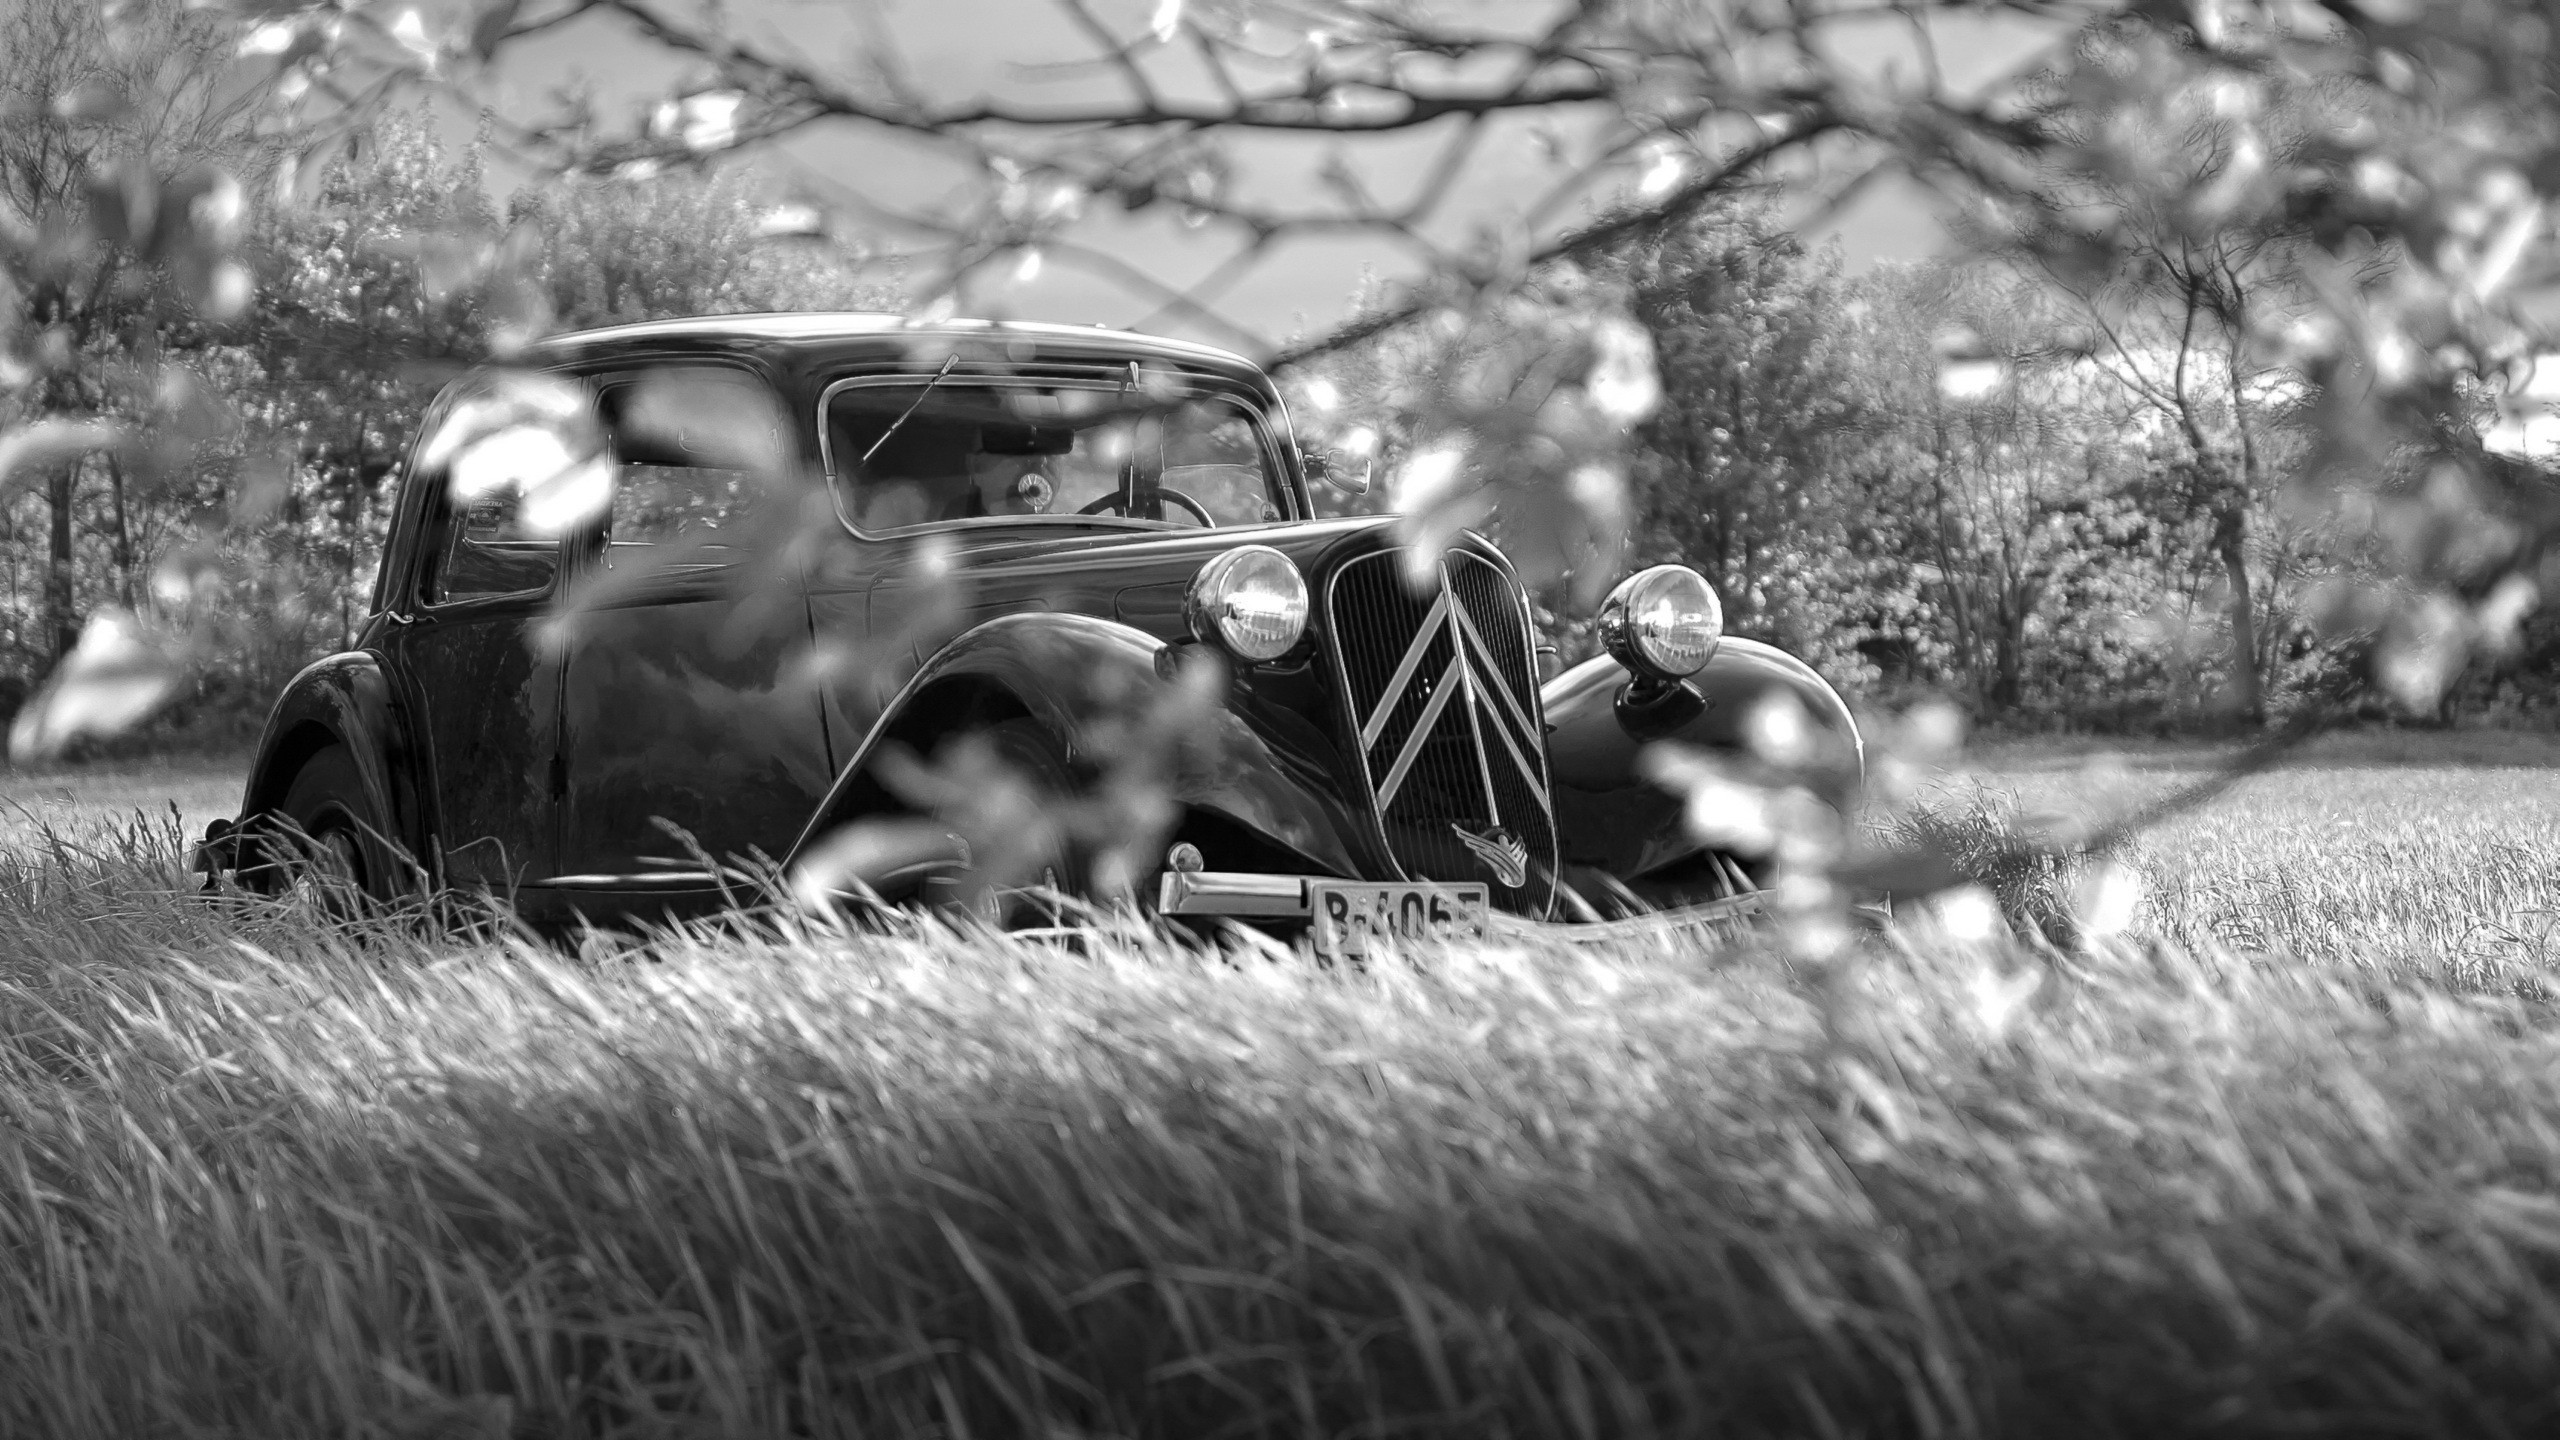 Citroãn artistic black and white classic cars machine wallpaper